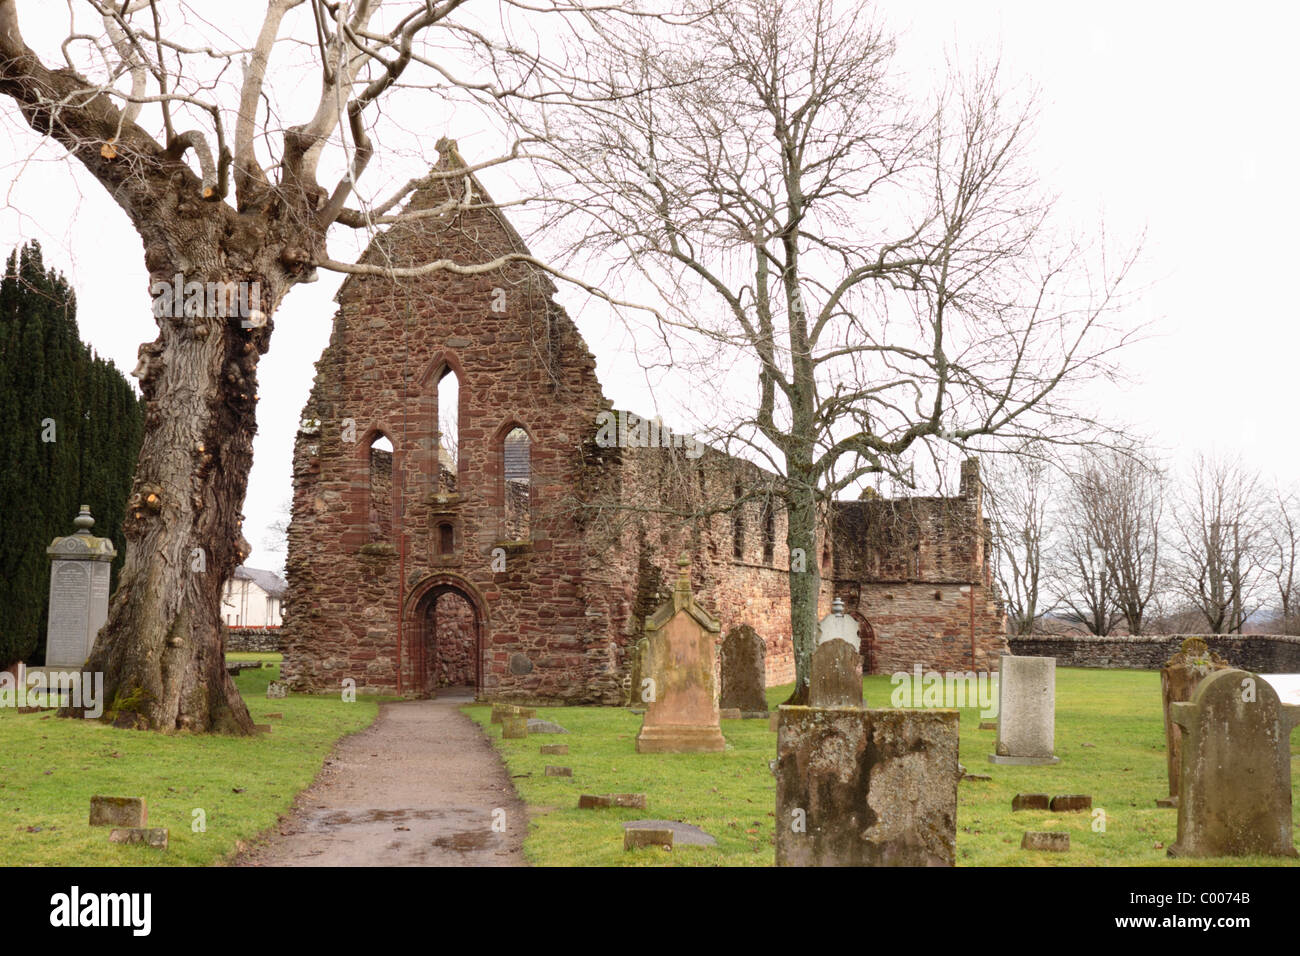 Remains of Beauly Priory - Stock Image